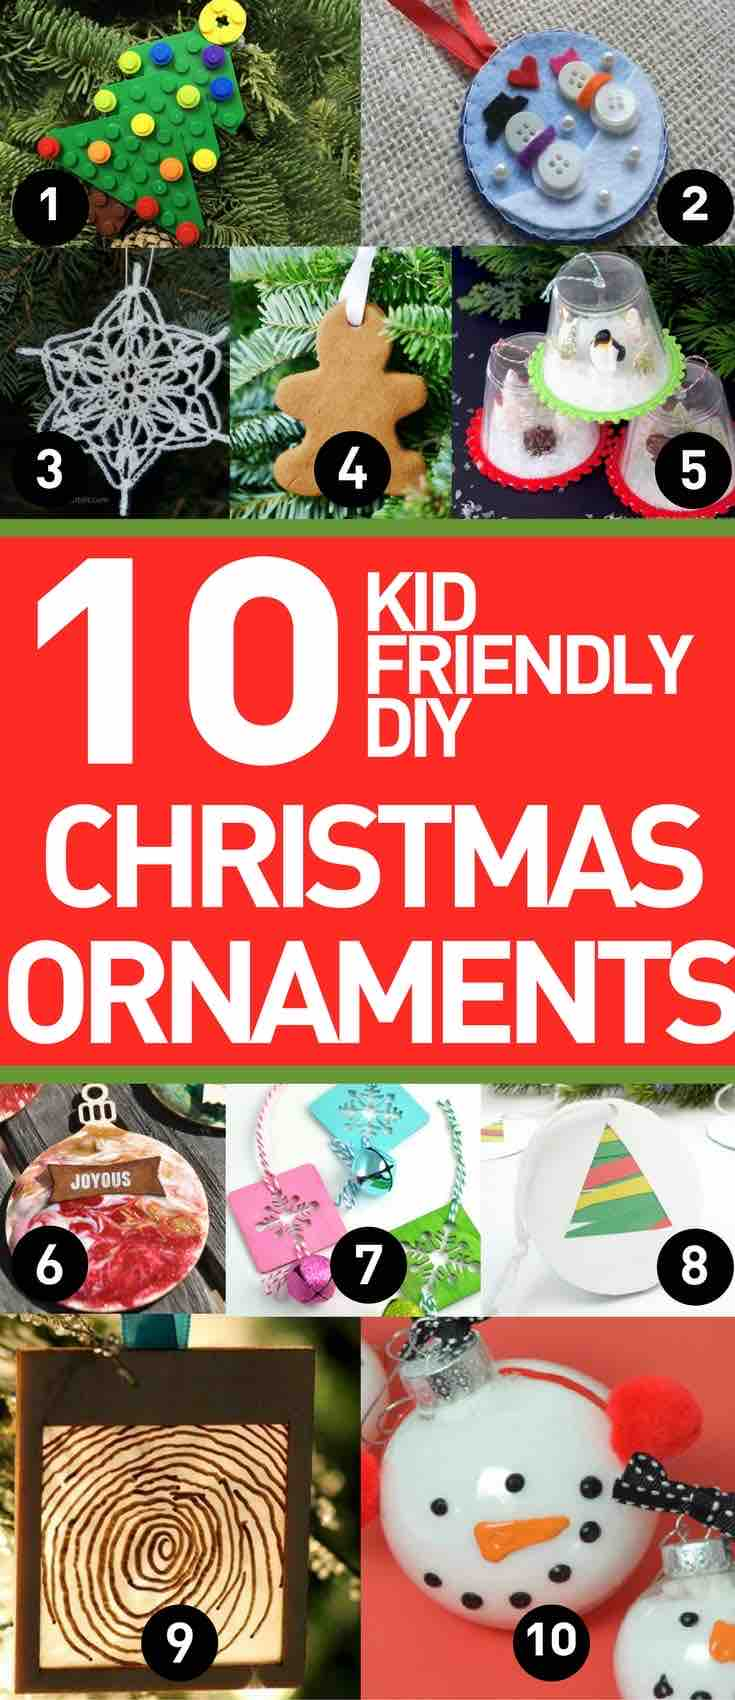 DIY Christmas Ornaments to Make with the Kids